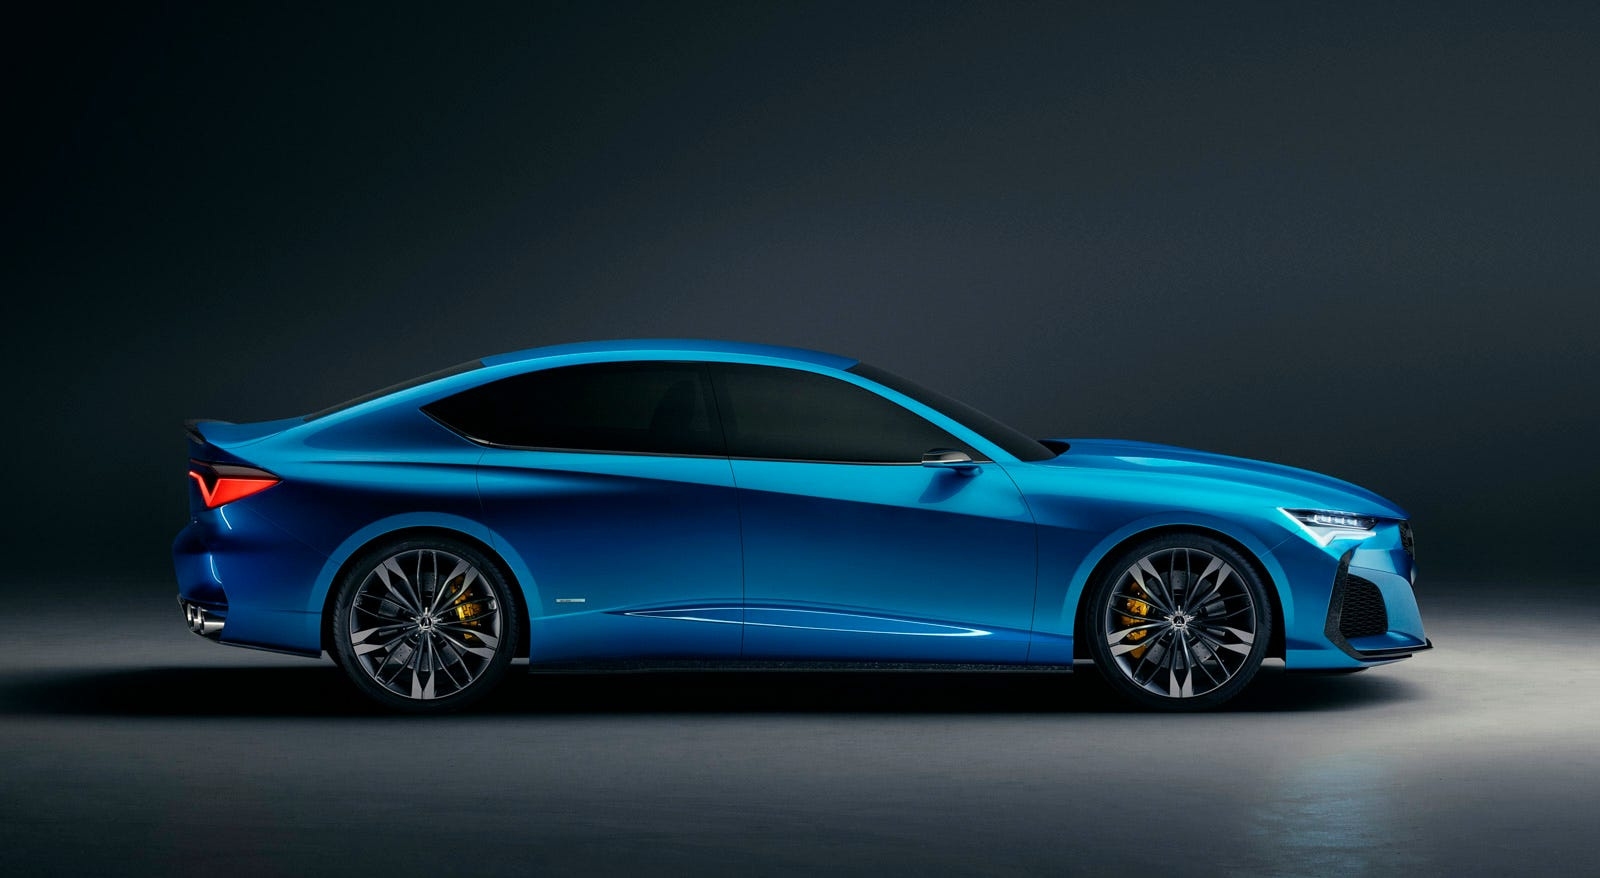 Illustration for article titled The New Acura Type S Concept Is Starting To Look Like The Acura We Miss